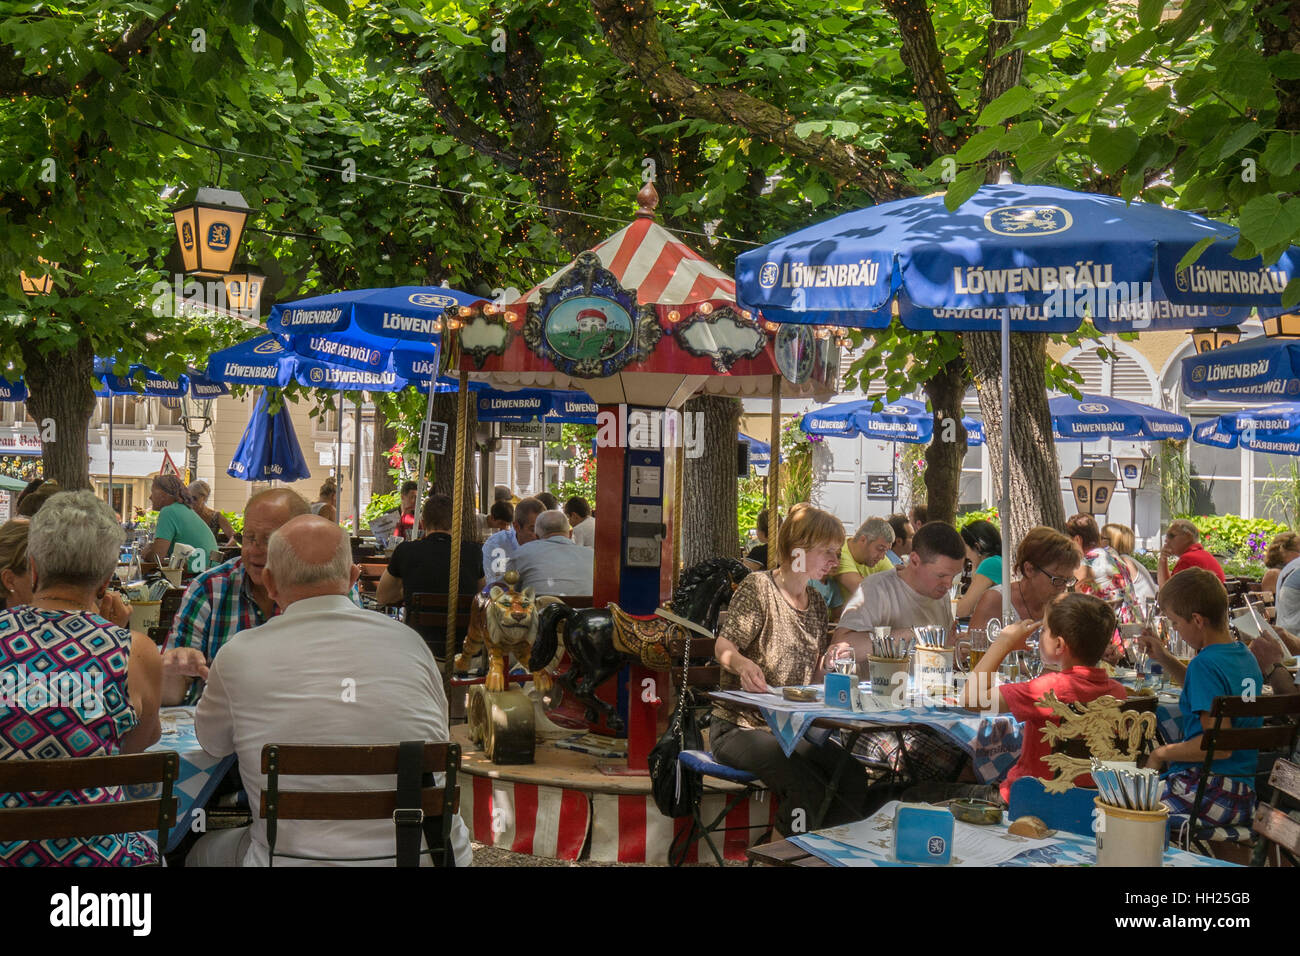 German beer garden - Lowenbrau Beer Garden, Gasthaus Lowenbrau, Baden Baden, Germany - Stock Image